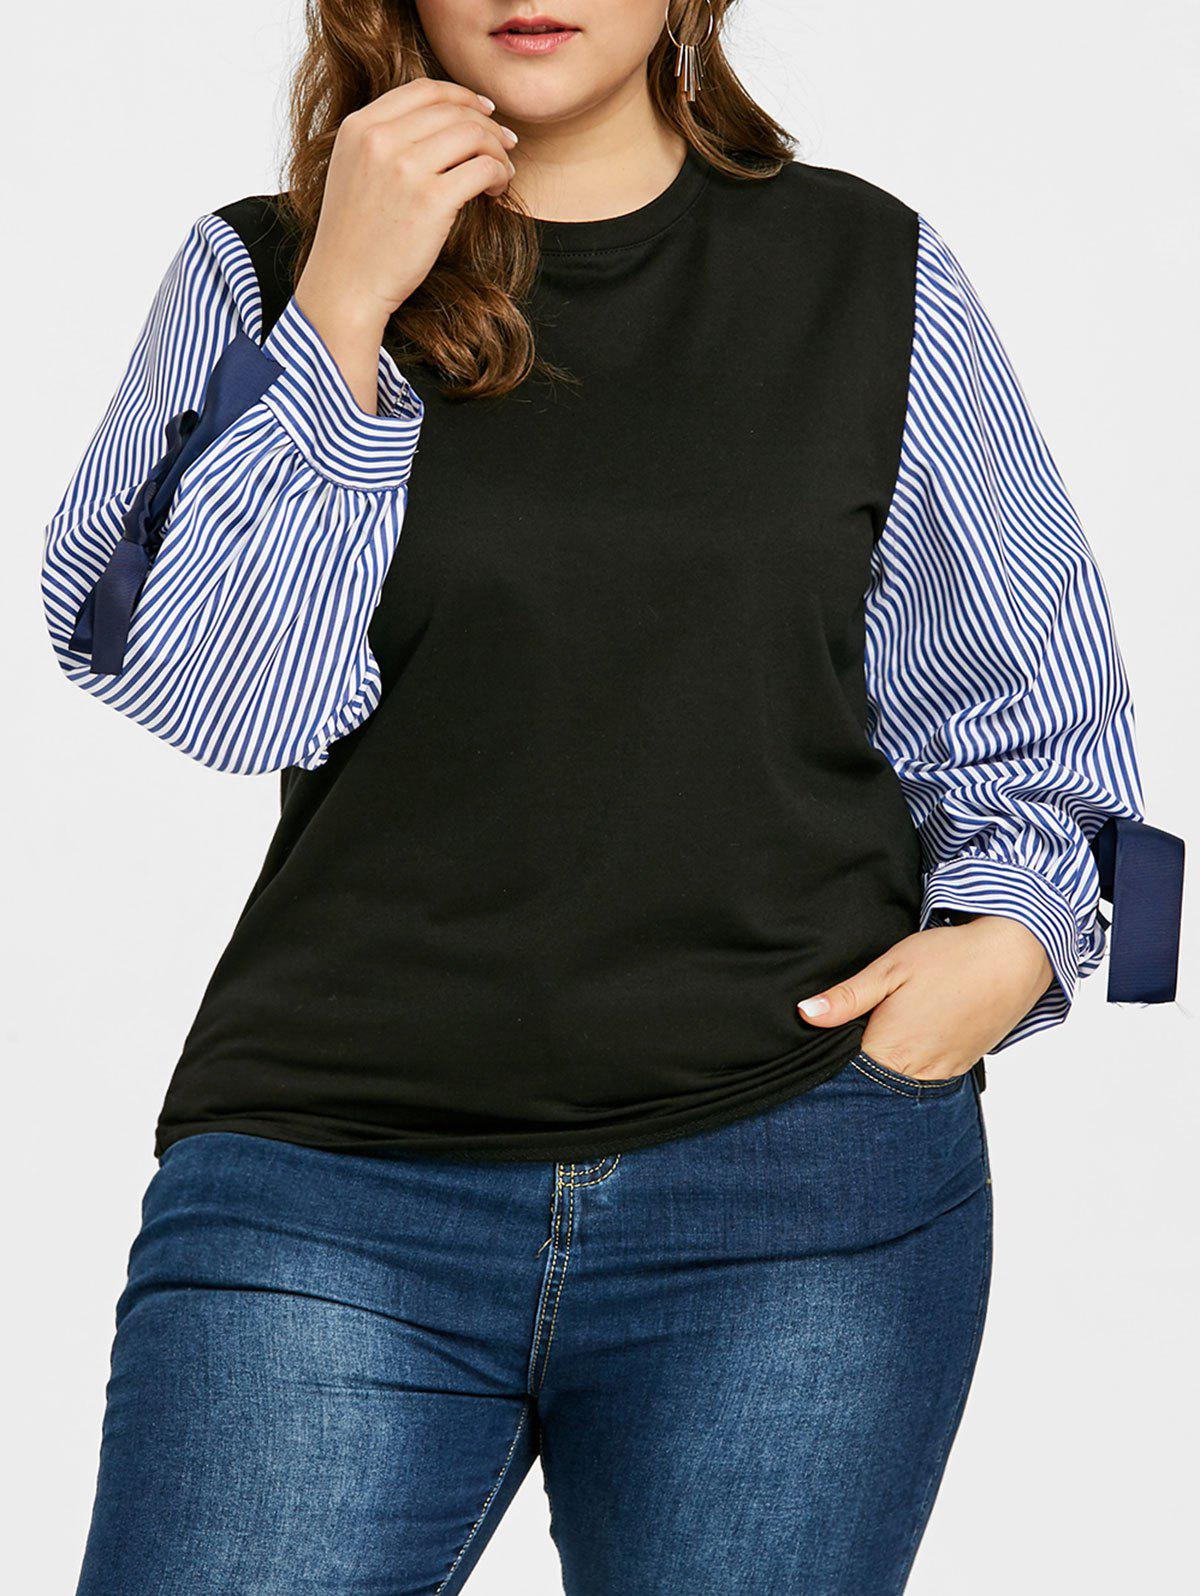 Striped Sleeve Plus Size Bowknot Embellished Top side bowknot embellished plus size sweatshirts page 1